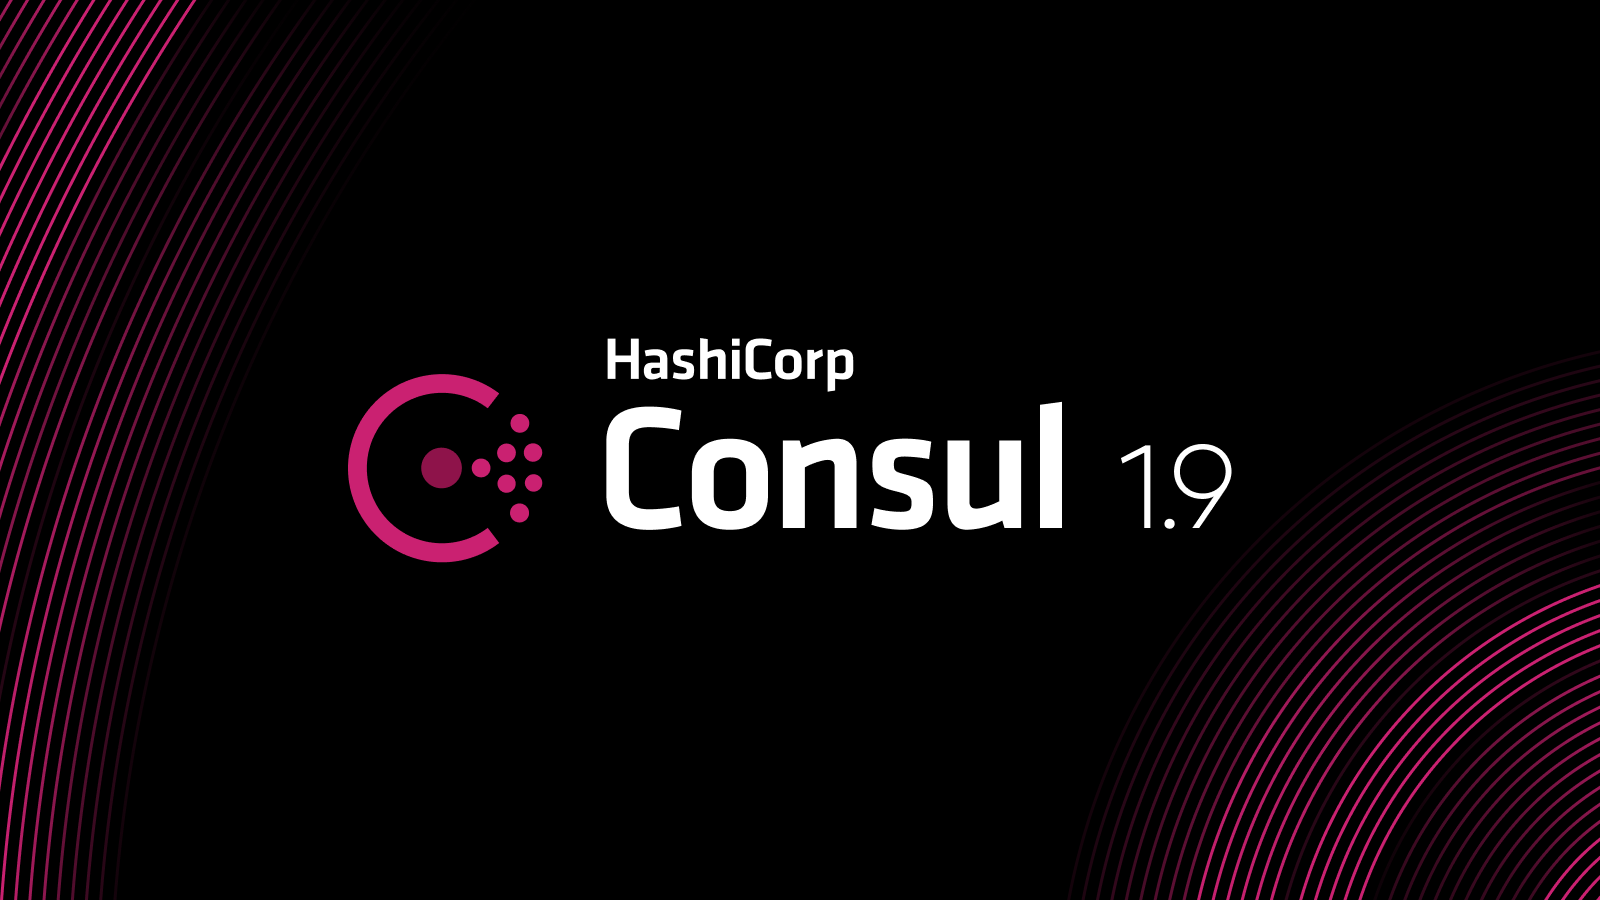 Announcing General Availability of HashiCorp Consul 1.9